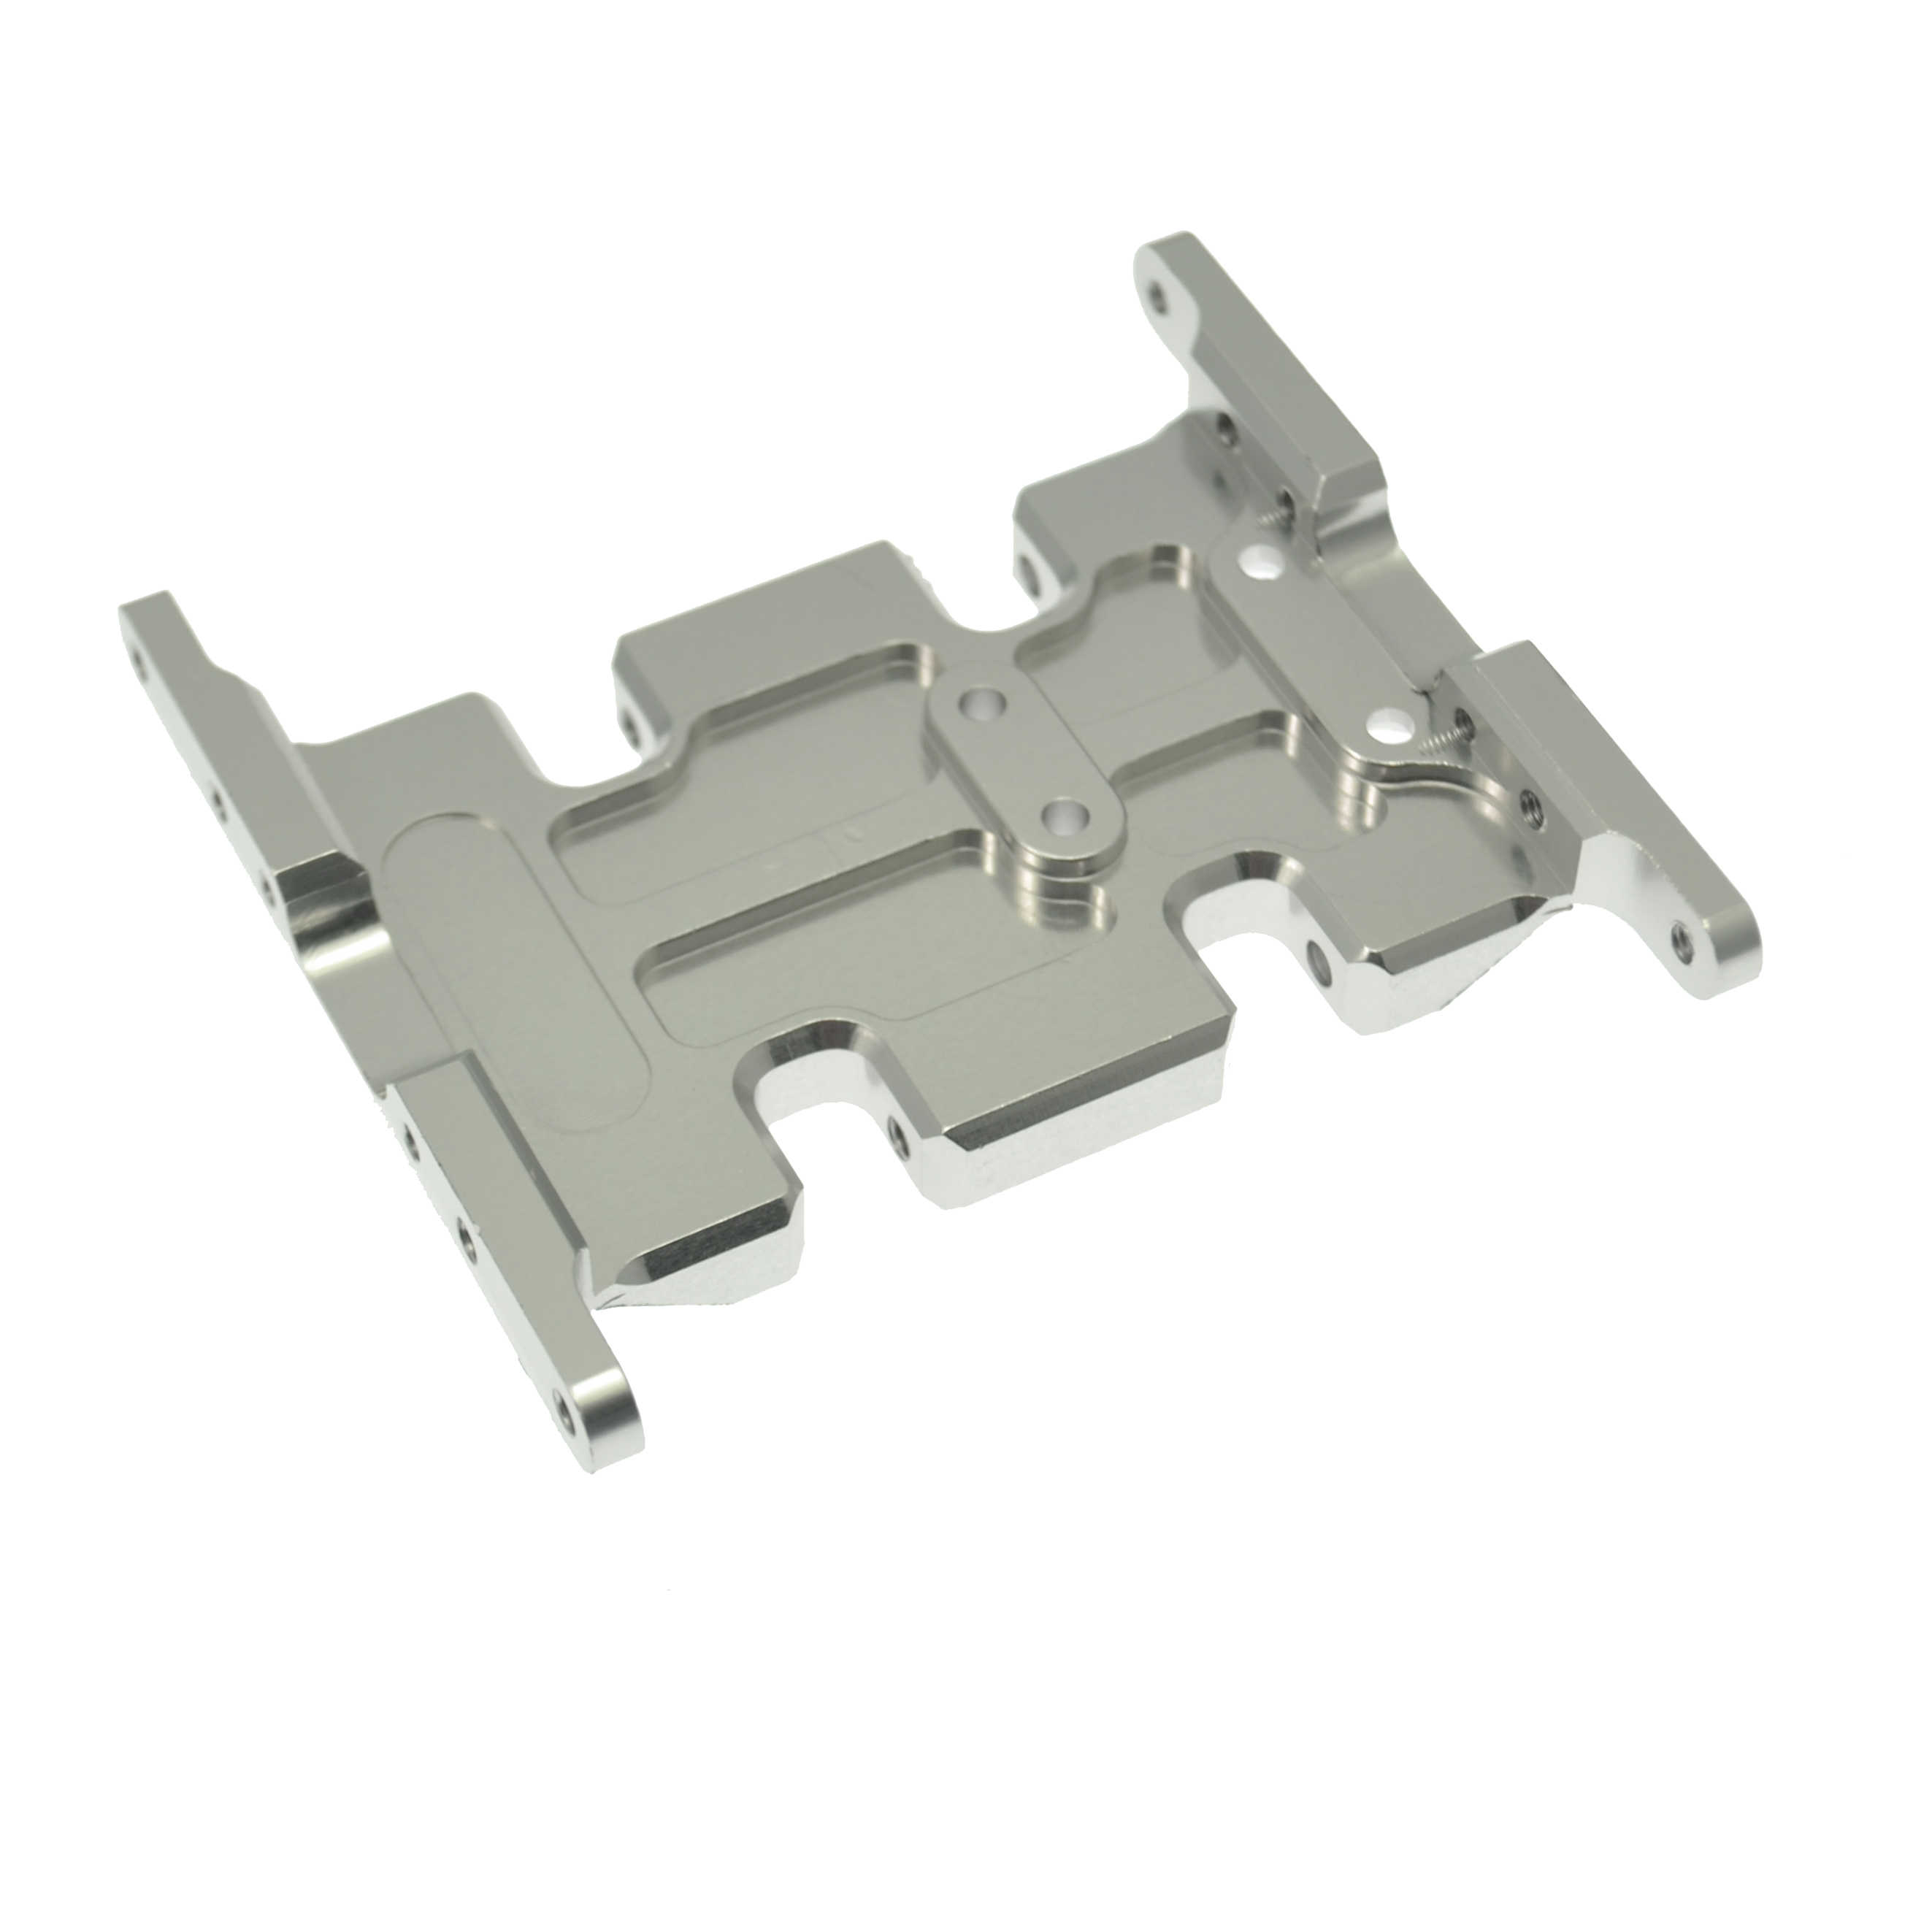 Aluminum Alloy Gear Box Mount Skid Plate Upgarde Part for 1//10 Axial SCX10